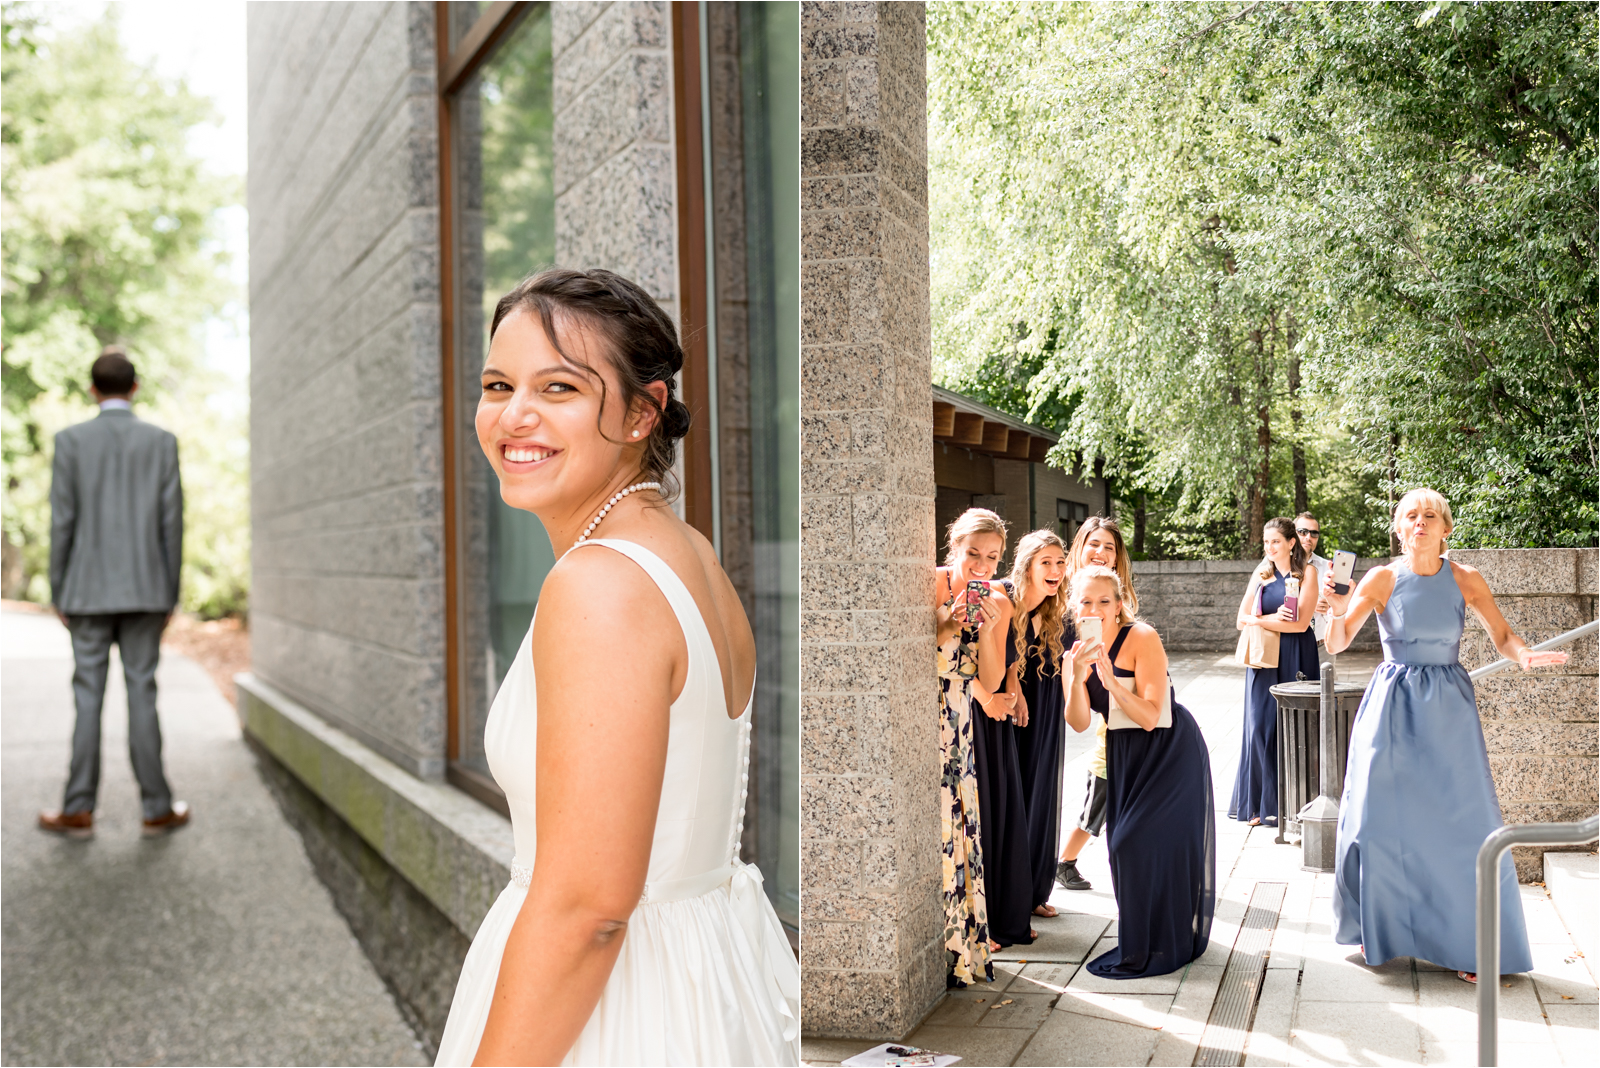 wedding-photography-jcrew-dress-feria-rasnick-maymont-park-wedding-maymont wedding-nature-center-focus-on-joy-photography-jessica-capozzola-richmond-virginia-rva